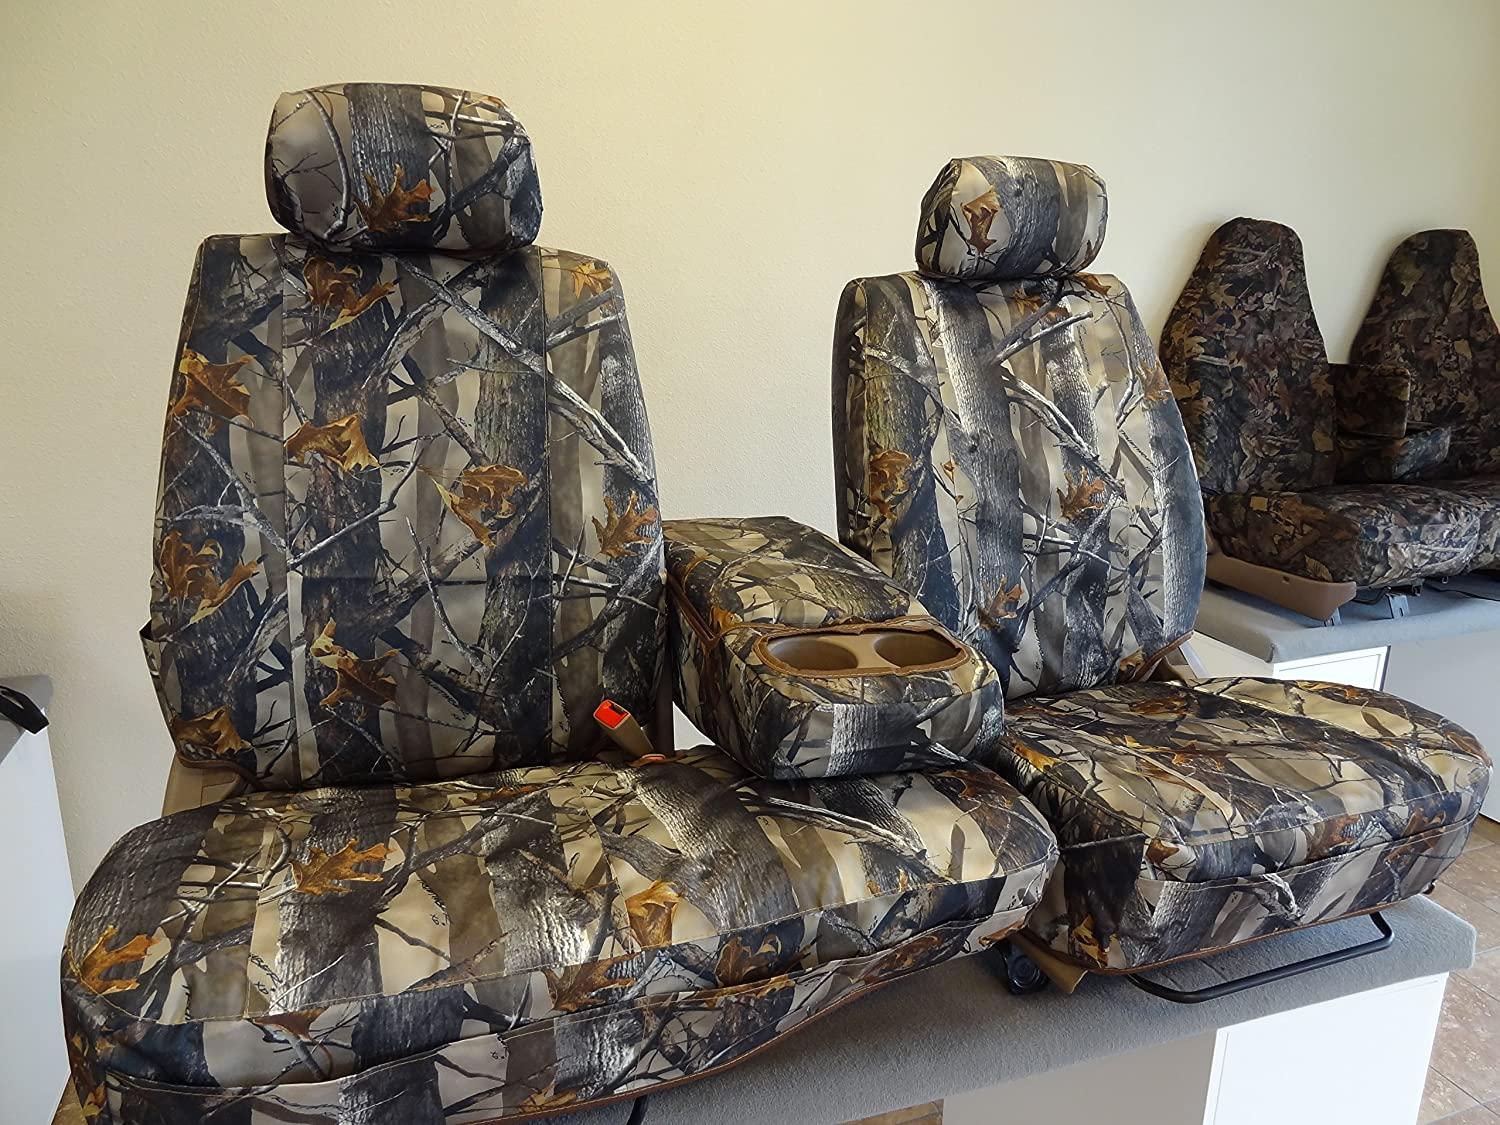 2000-2004 Toyota Tundra Seat Covers 40/60 Split Seat with Adjustable Headrest and Center Console in Camo Endura Durafit Seat Covers T787